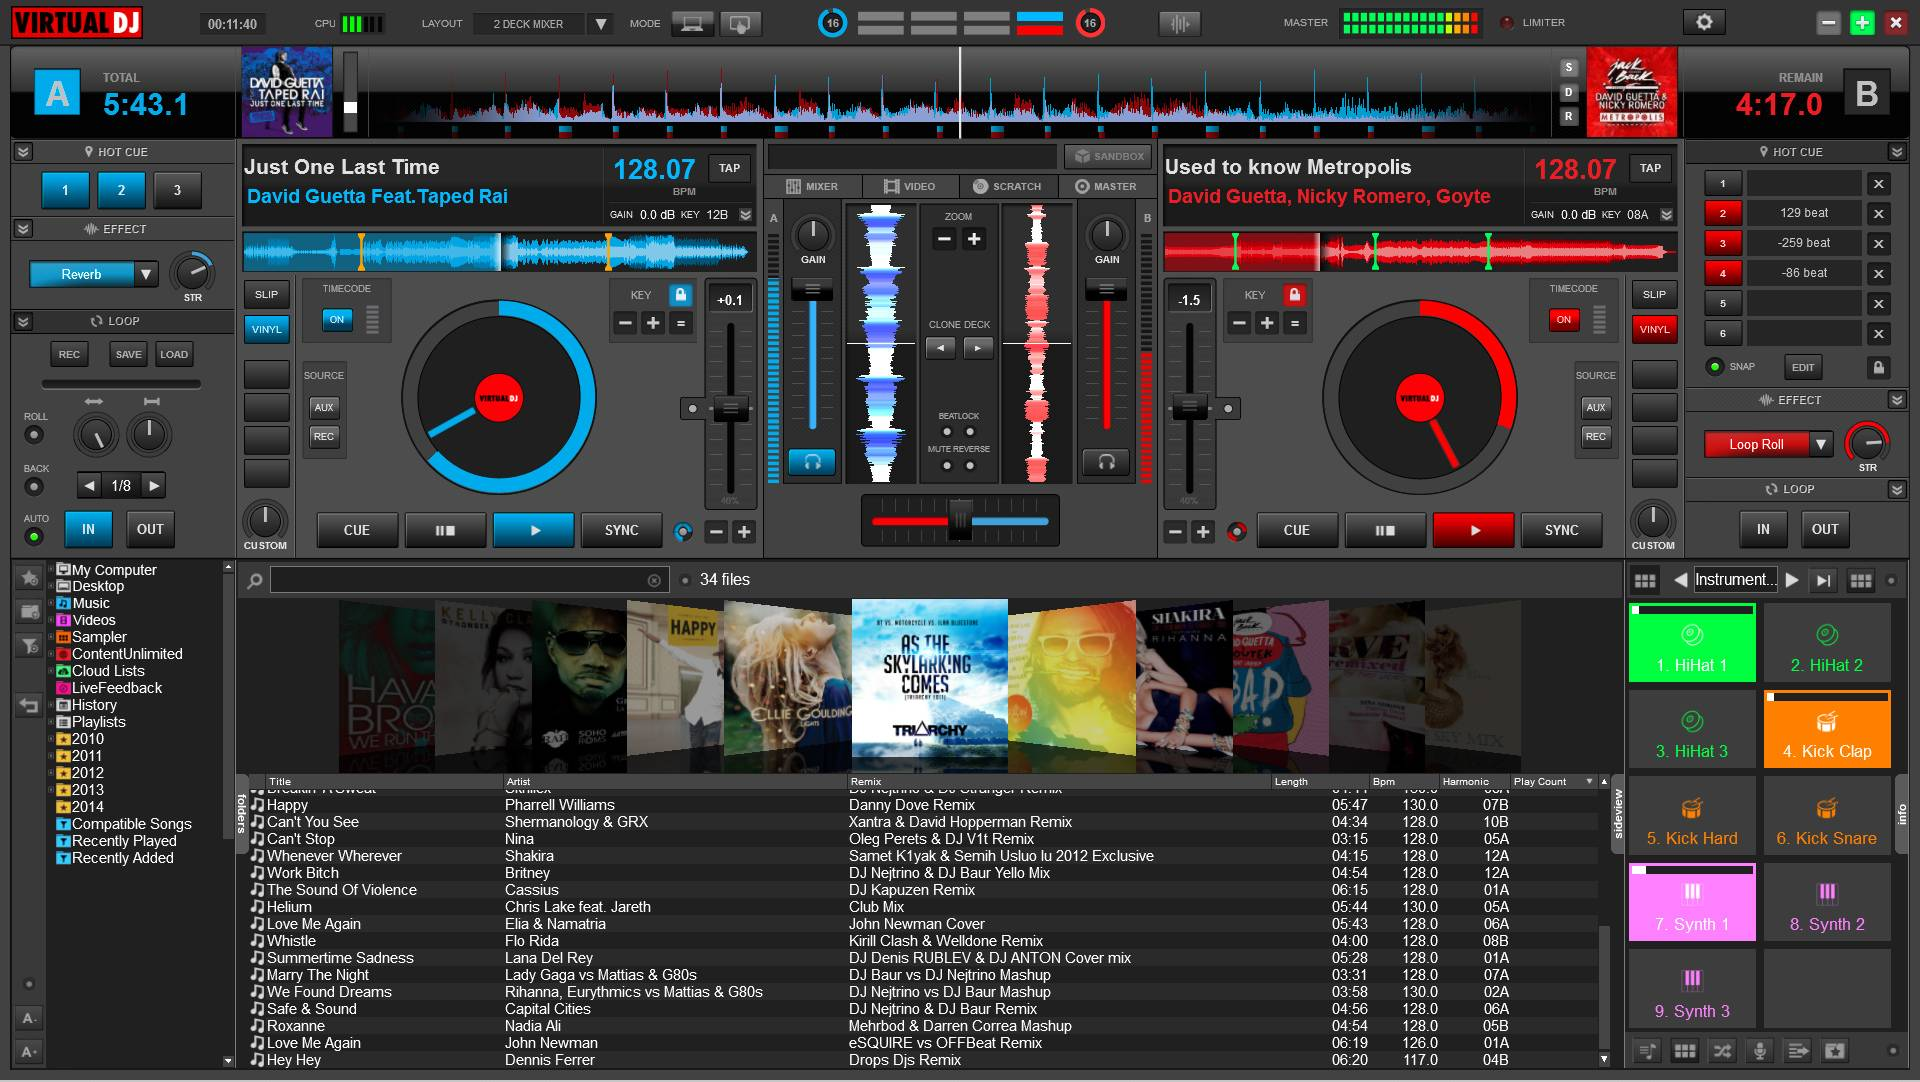 dj software virtualdj